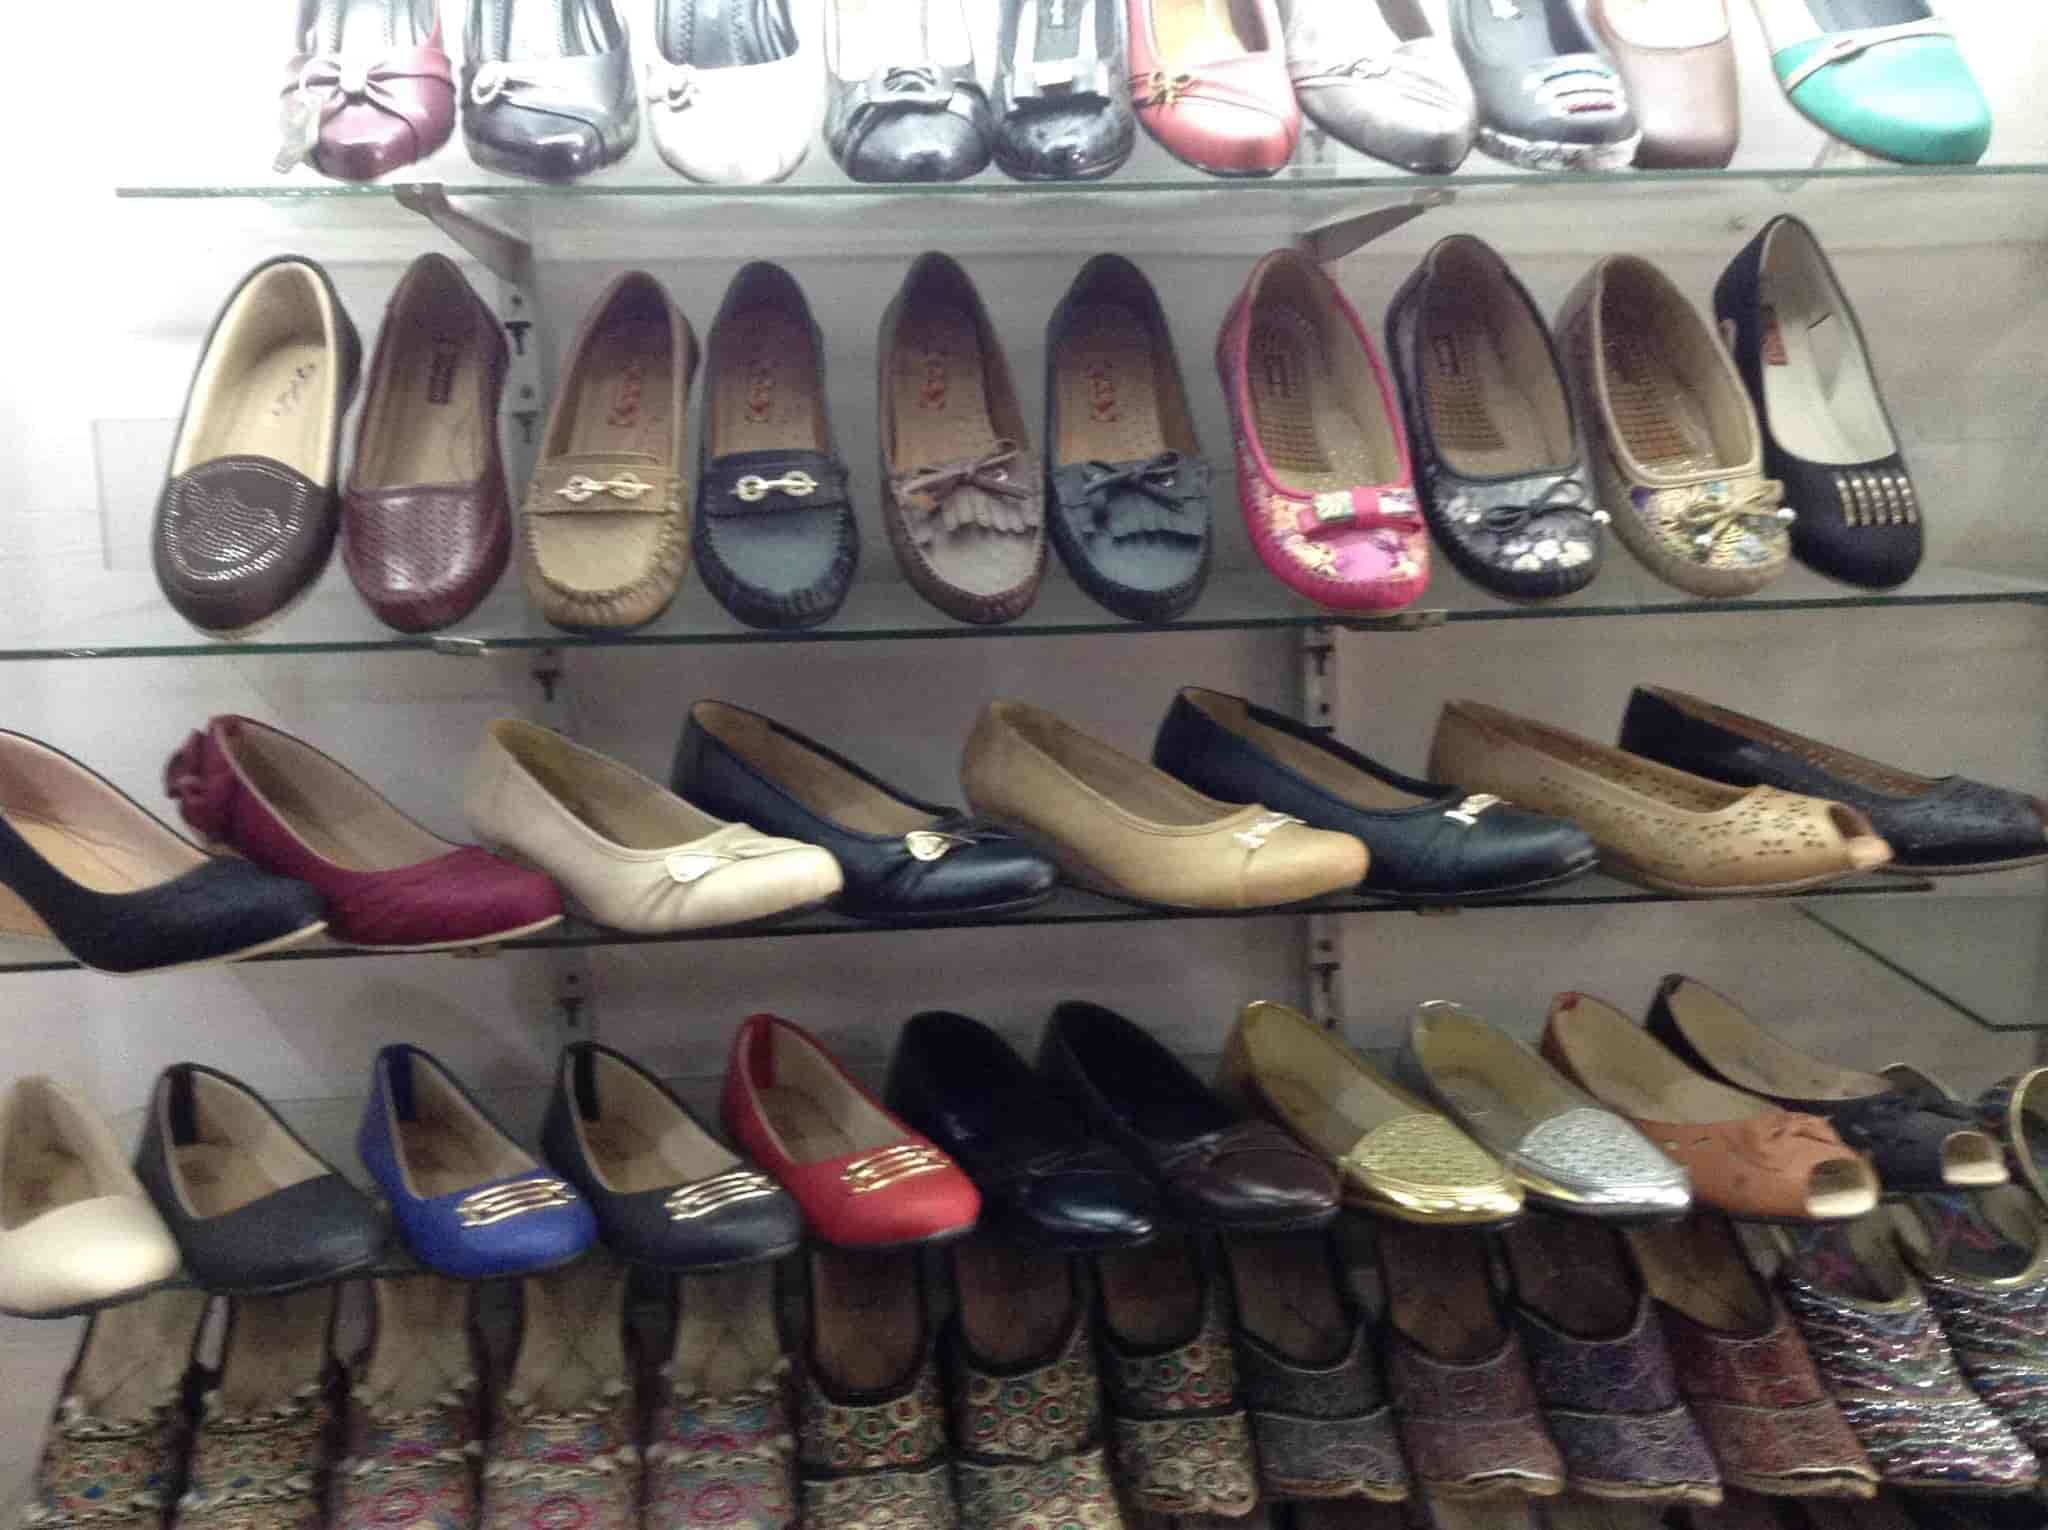 Empire Shoes, Chandigarh Sector 59 Phase 5 - Shoe Dealers in Chandigarh -  Justdial